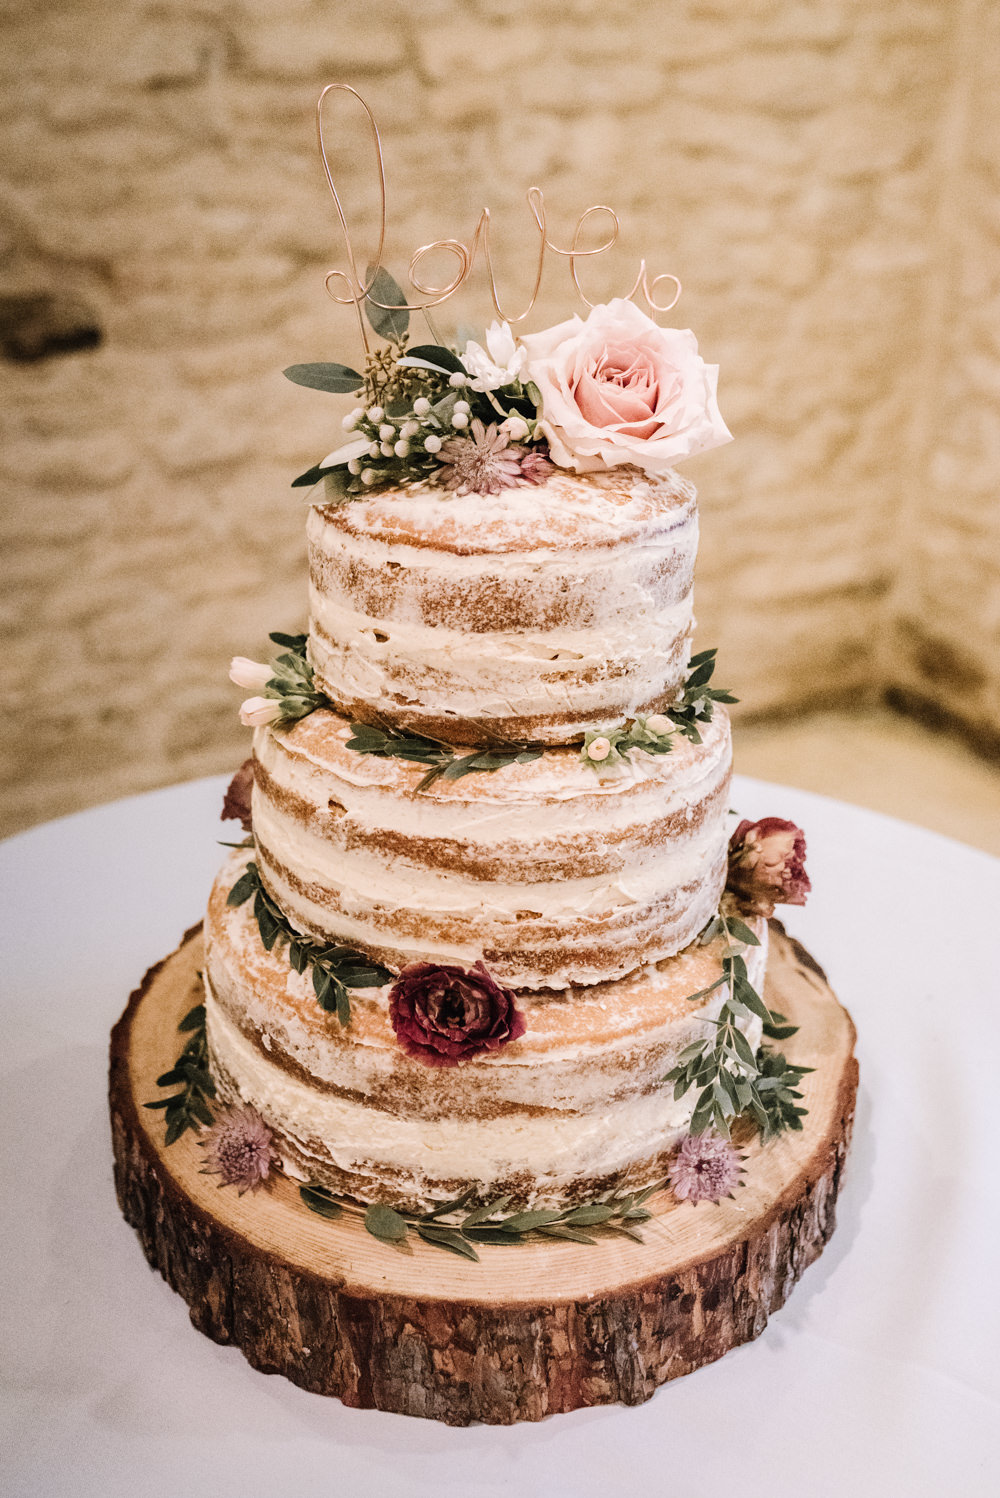 Naked Cake Layer Sponge Semi Flowers Log Stand Wire Love Topper Kingscote Barn Wedding Oobaloos Photography